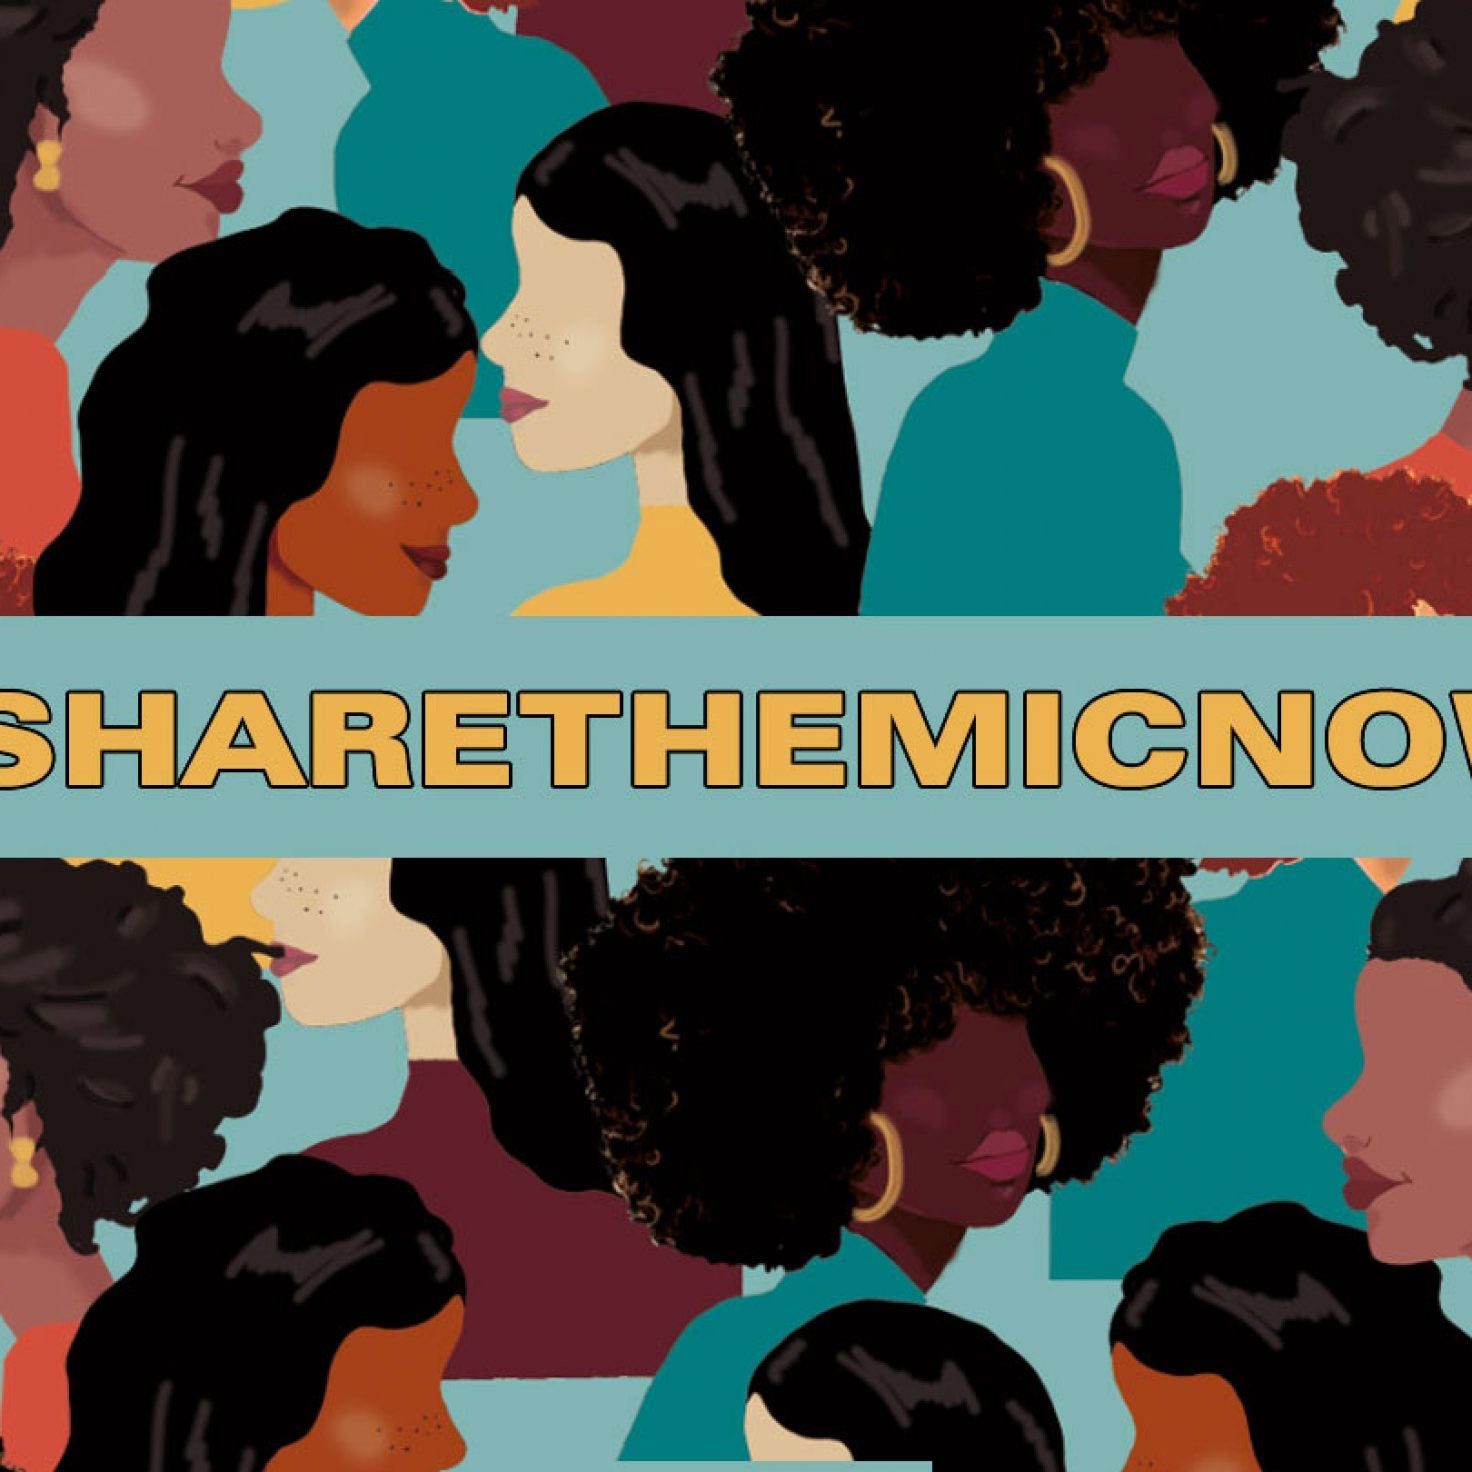 Bozoma Saint John And Luvvie Ajayi Jones Detail The #ShareTheMicNow Initiative